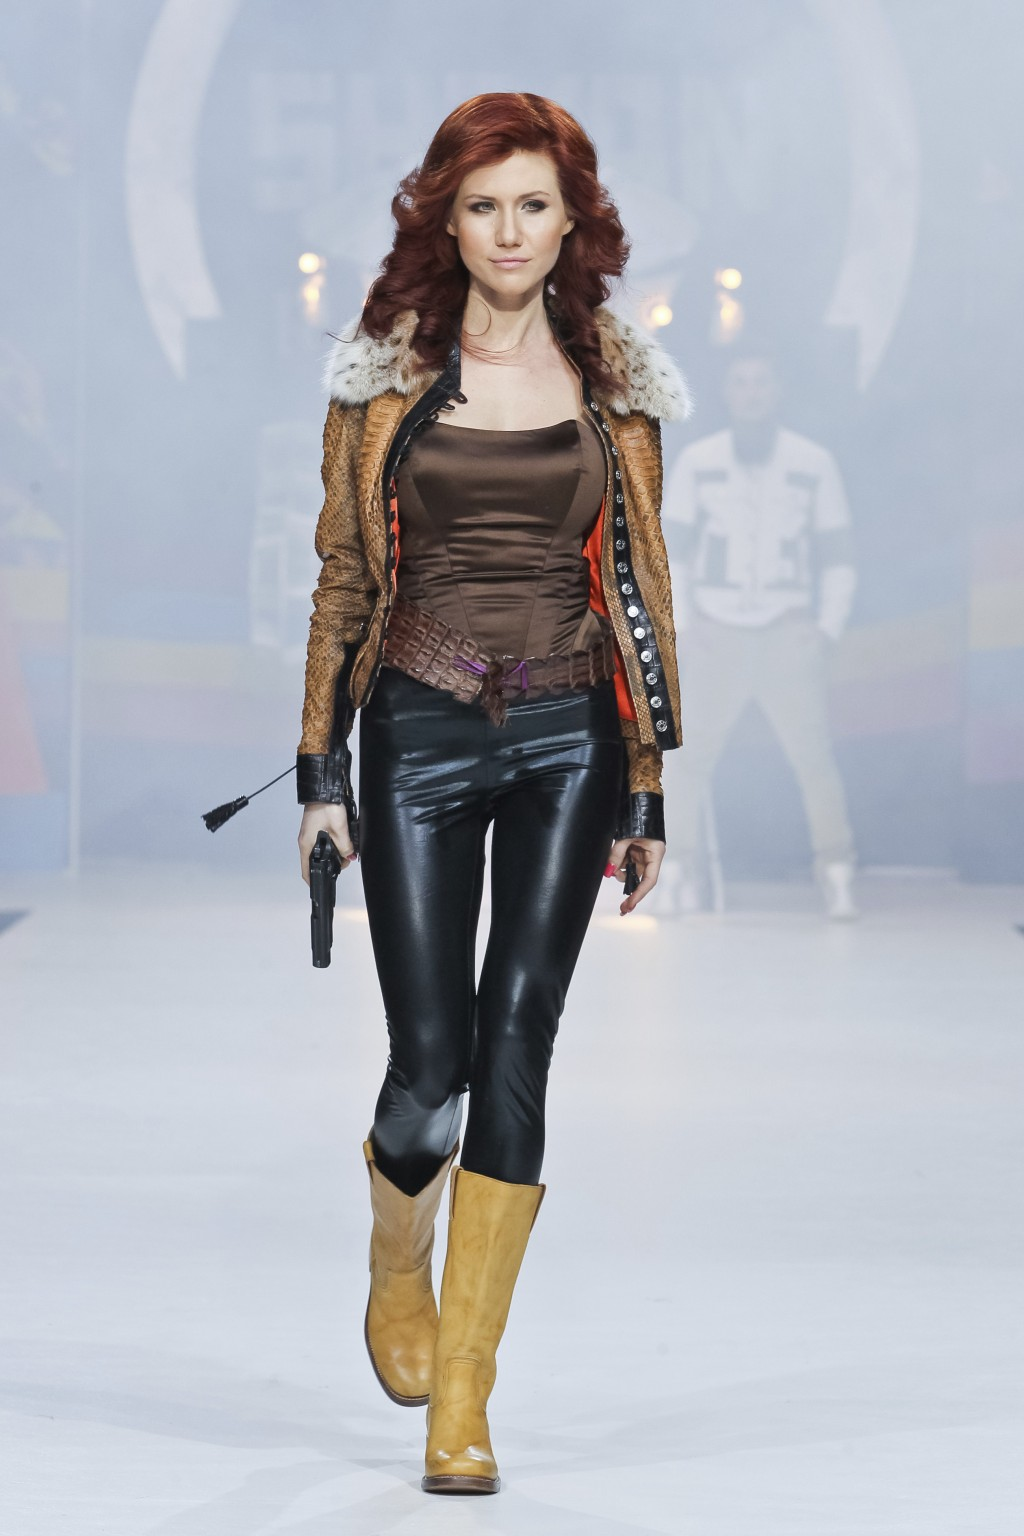 FILE. In this file photo taken on Sunday, April 3, 2011, Anna Chapman, who was deported from the U.S. on charges of espionage, displays a creation by